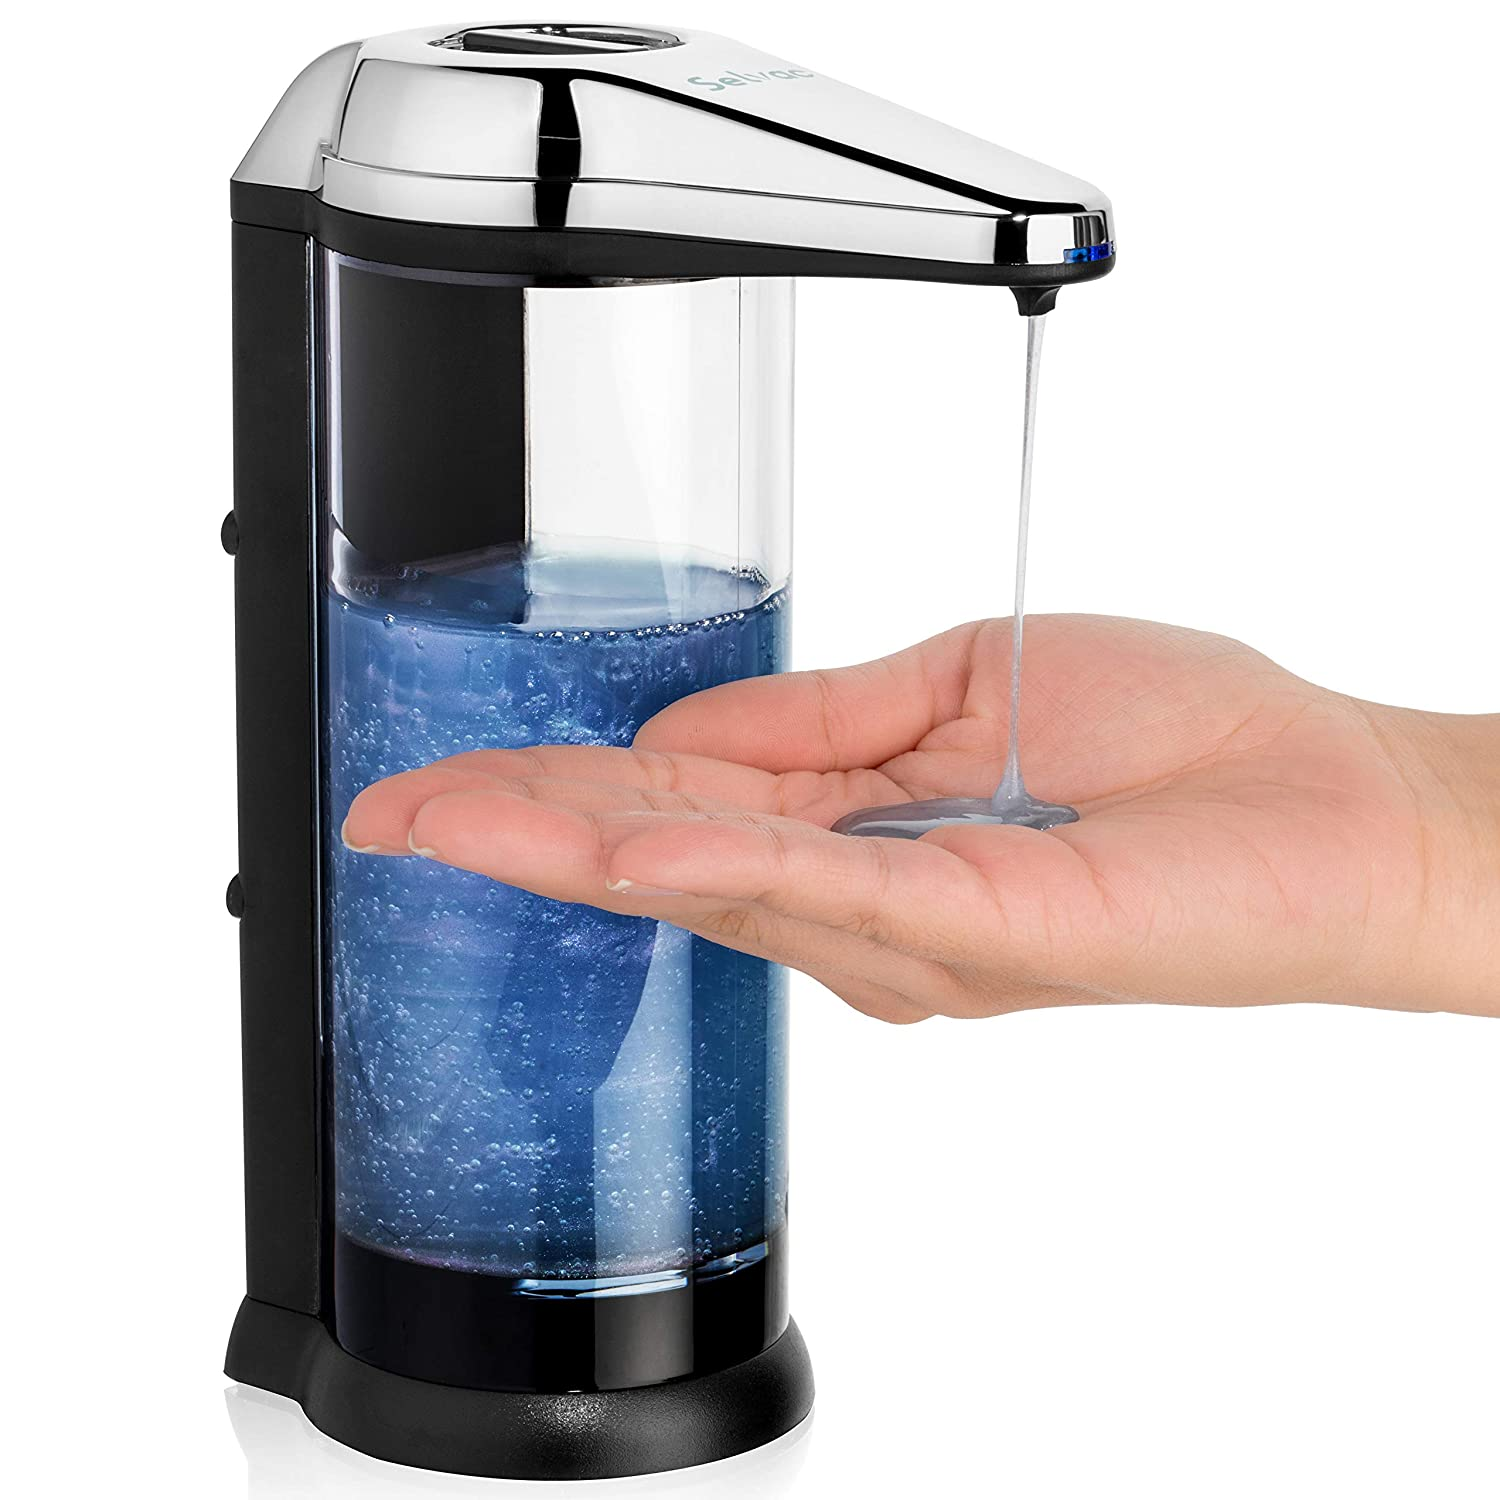 Touchless soap Dispenser - ANTI-LEAKAGE Soap Dispenser-Accurate Infrared Motion- Rusting Free- Enjoy Hands free Soap Dispenser for up To a Year before Having to Change Batteries-Back Battery Compart